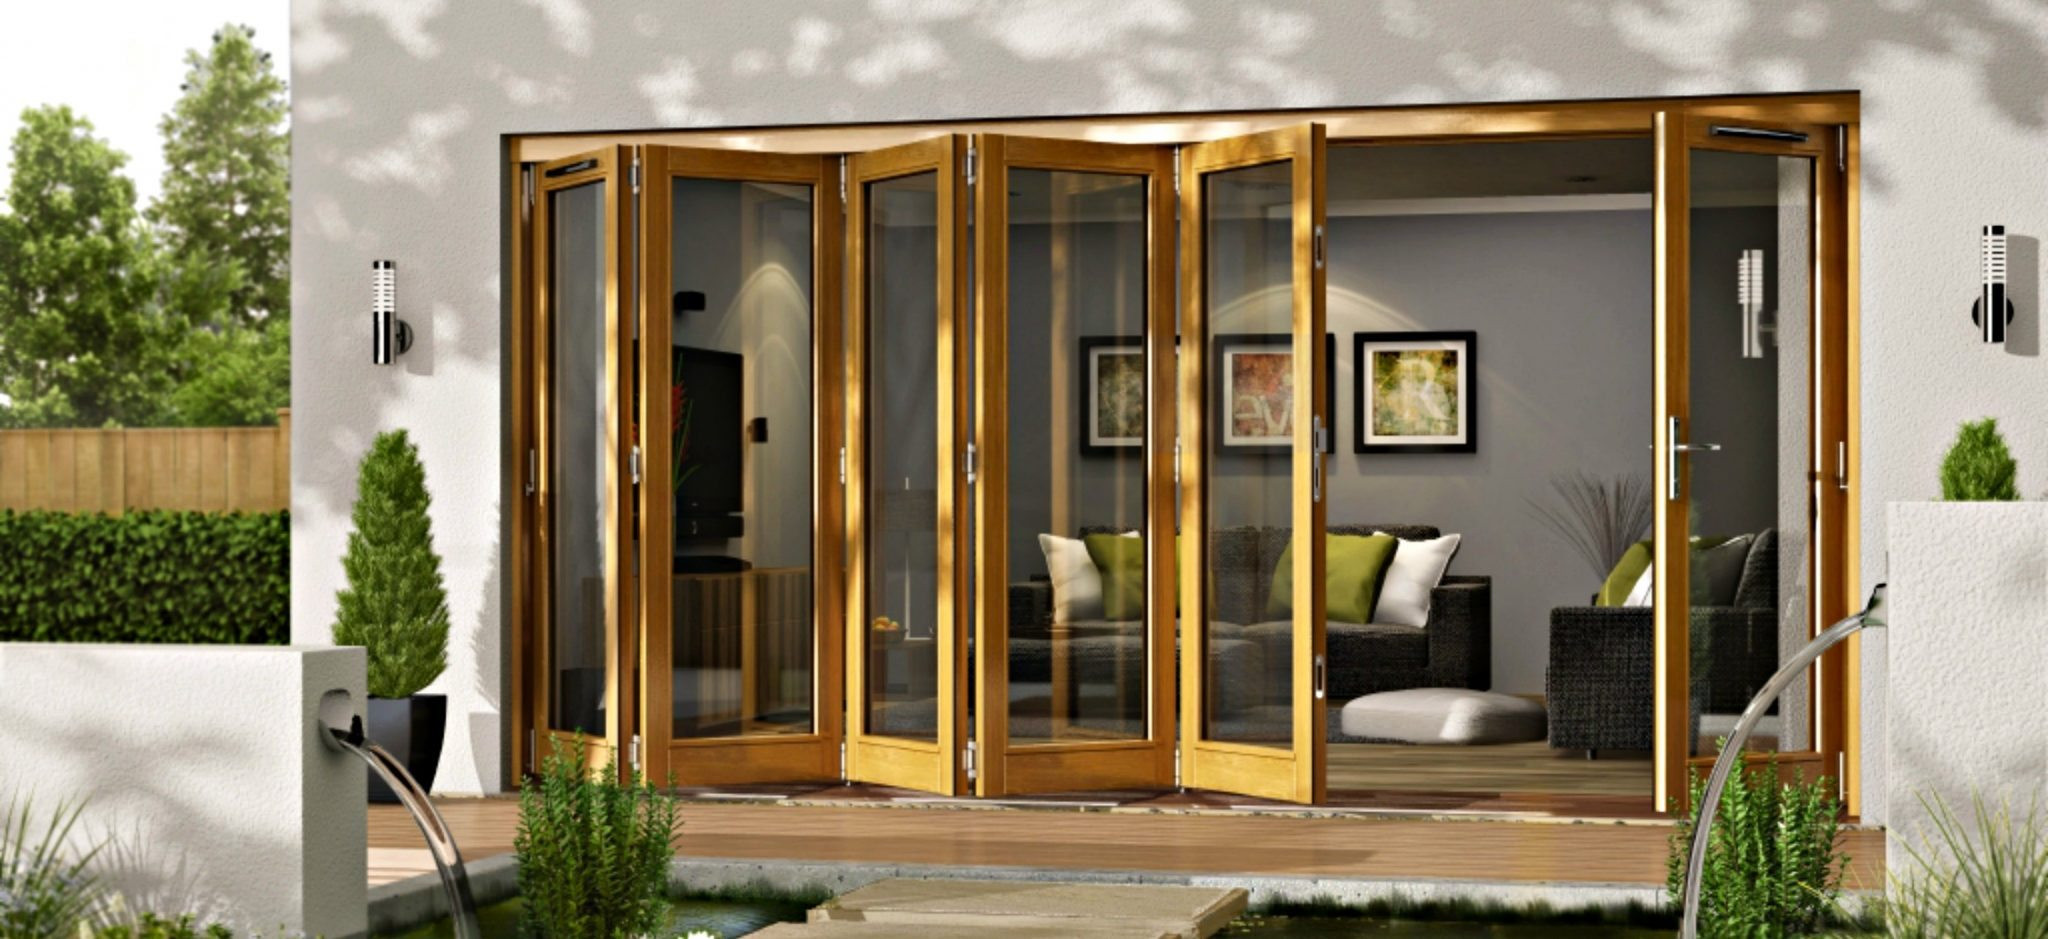 Best ideas about Folding Patio Doors . Save or Pin External Folding and Sliding Doors Patio Doors from Doors Now.